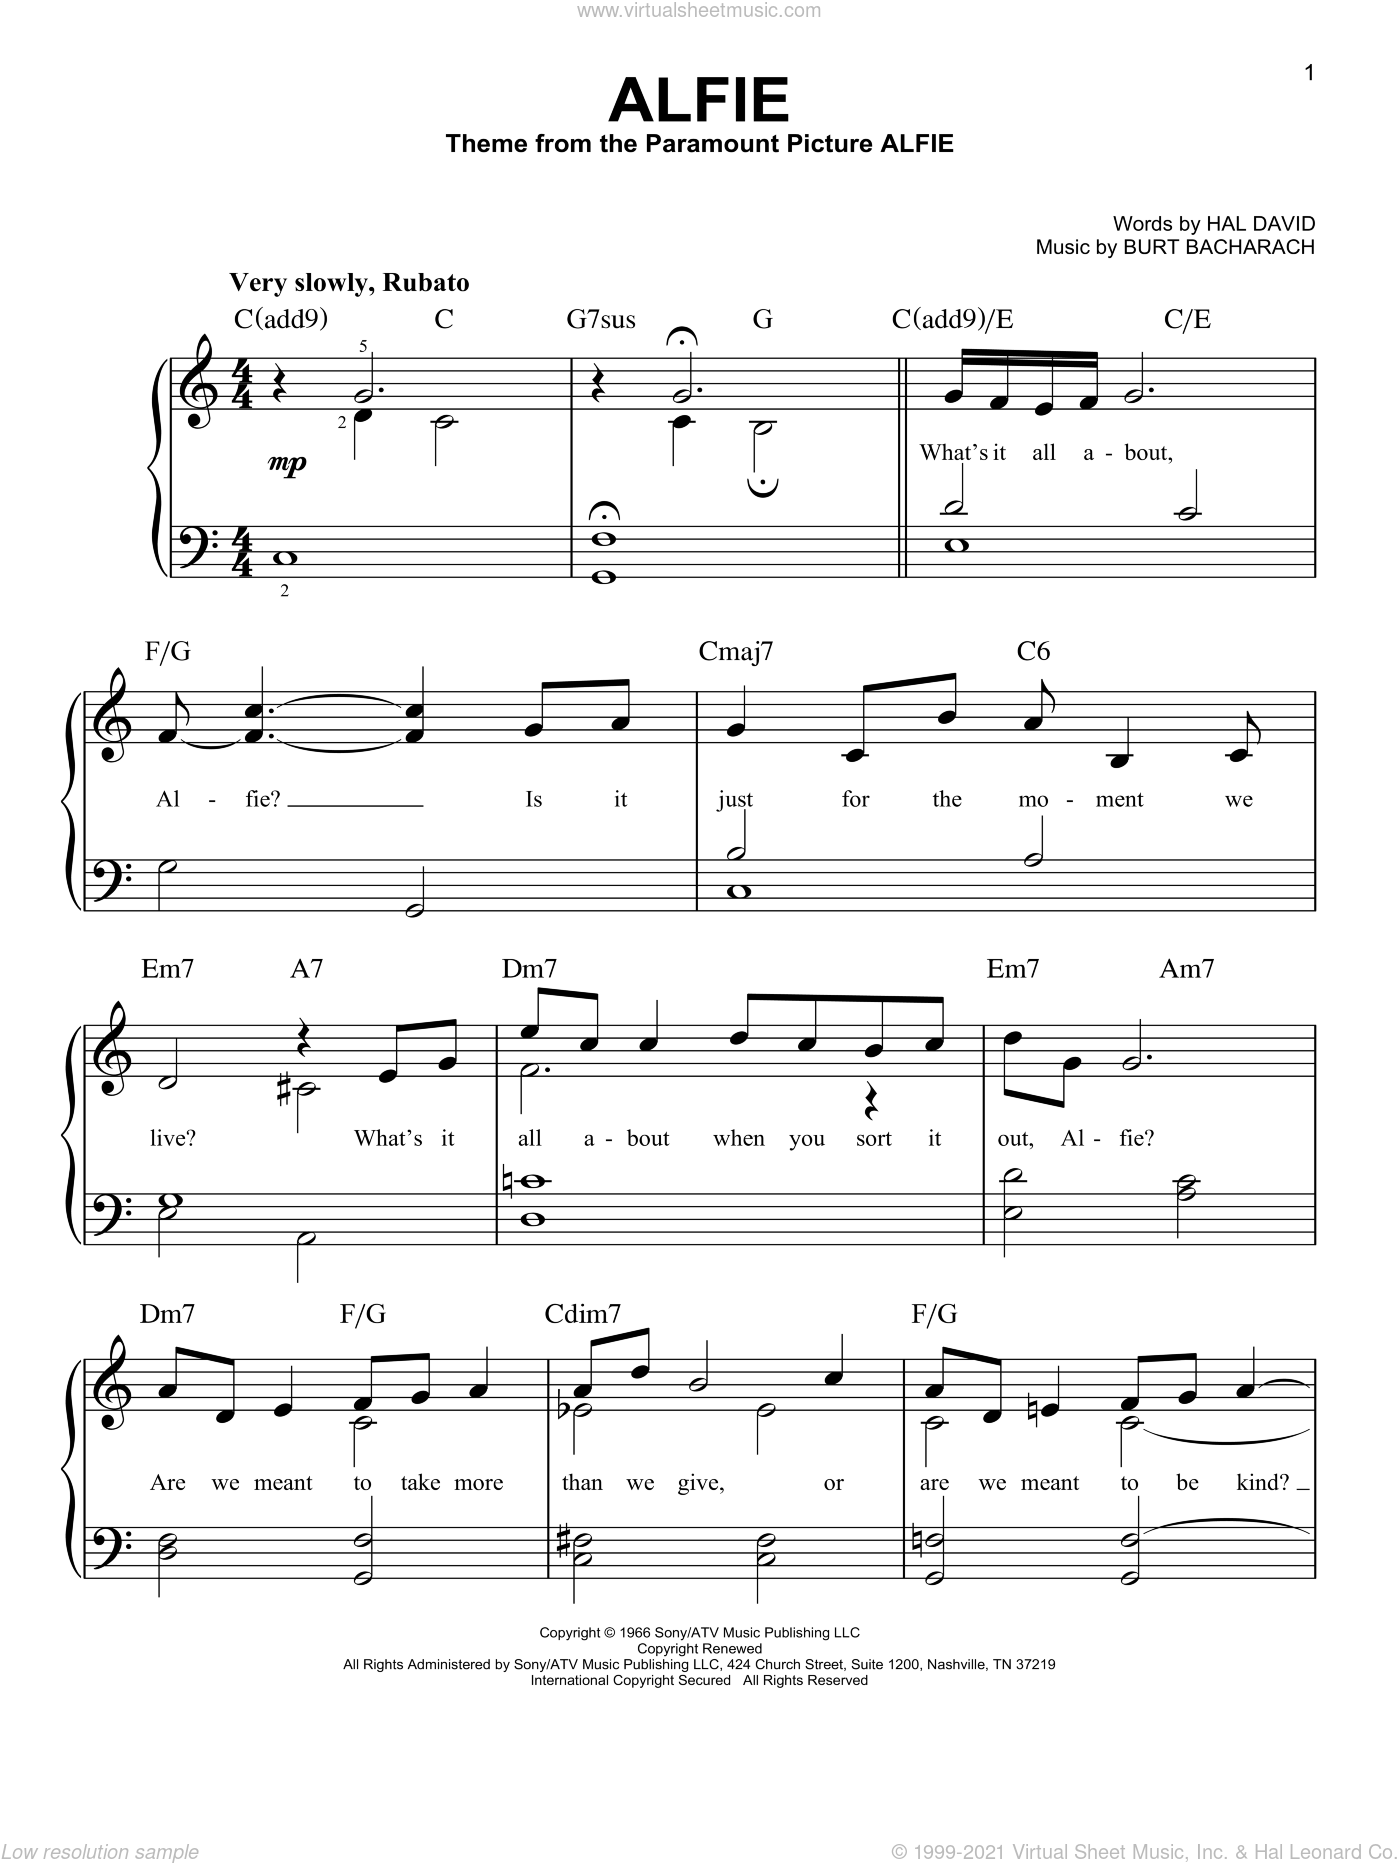 Alfie, (easy) sheet music for piano solo by Bacharach & David, Barbra Streisand, Cher, Dionne Warwick, Burt Bacharach and Hal David, easy skill level